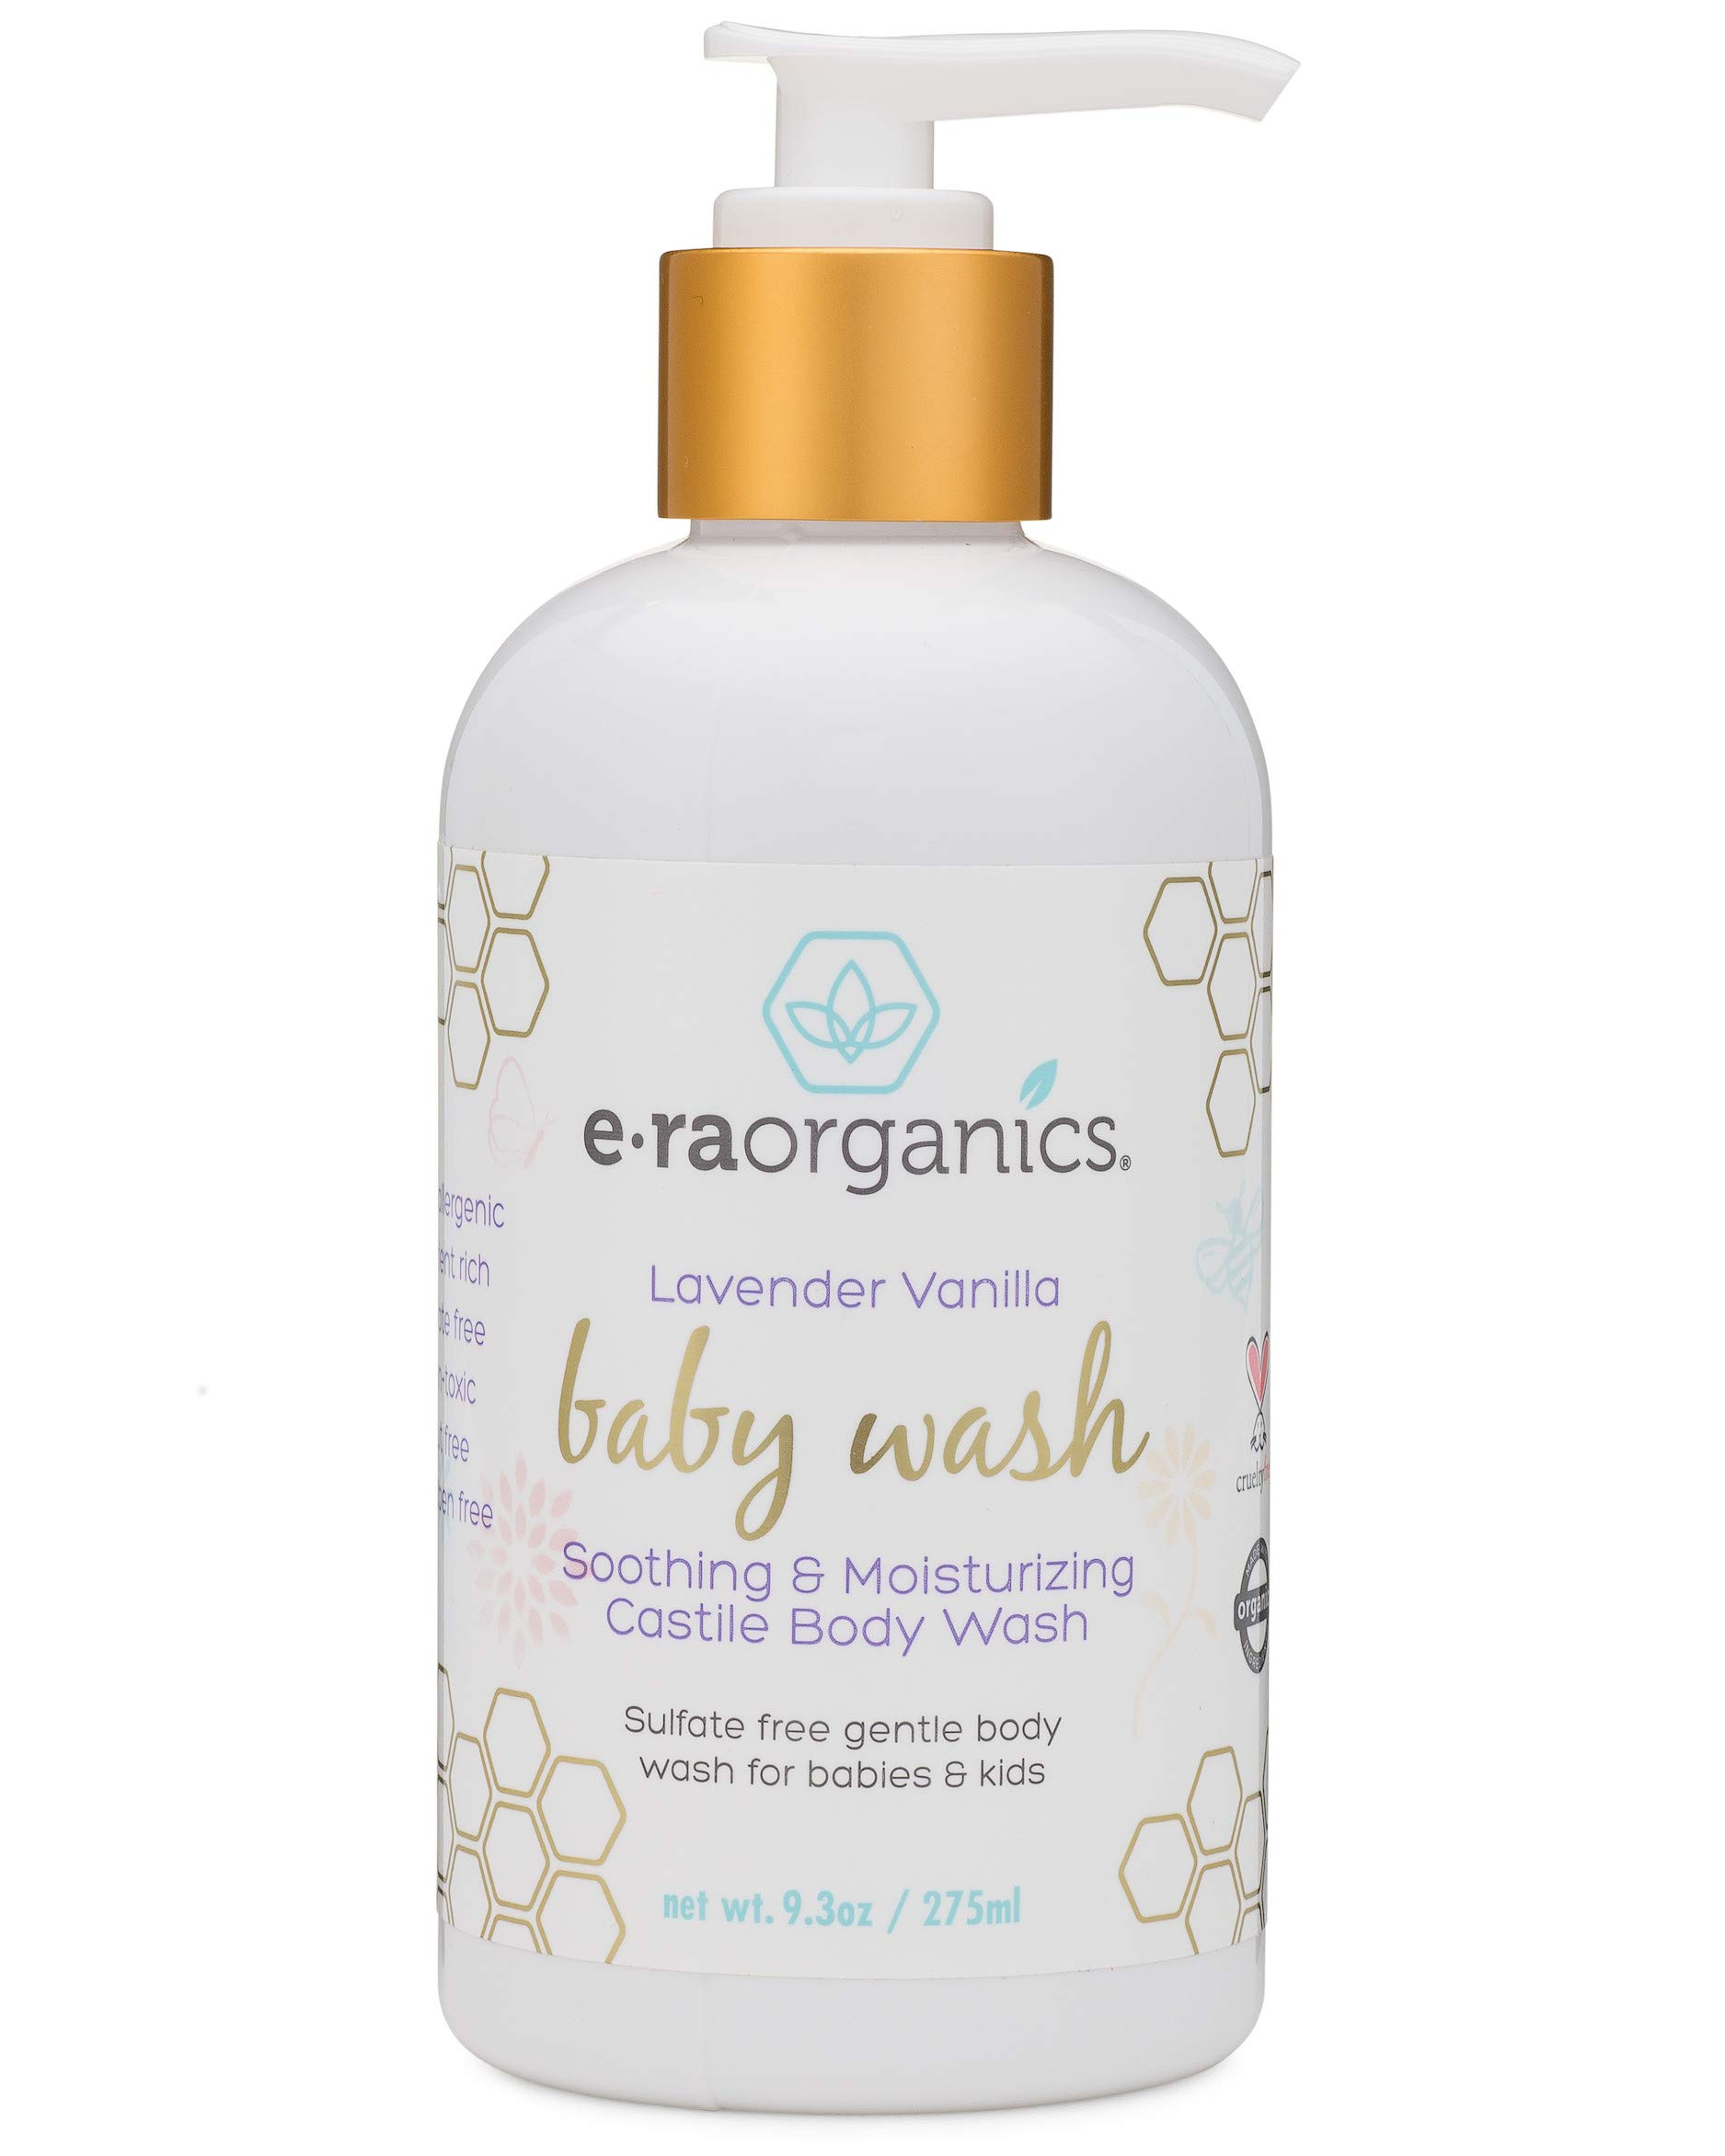 Moisturizing Natural Baby Wash - Organic Sulfate Free Soothing Castile Soap Body Wash for Dry, Itchy, Sensitive Skin with Coconut Oil, Jojoba Oil, Olive Oil, Rosemary Extract and More Era-Organics by Era Organics